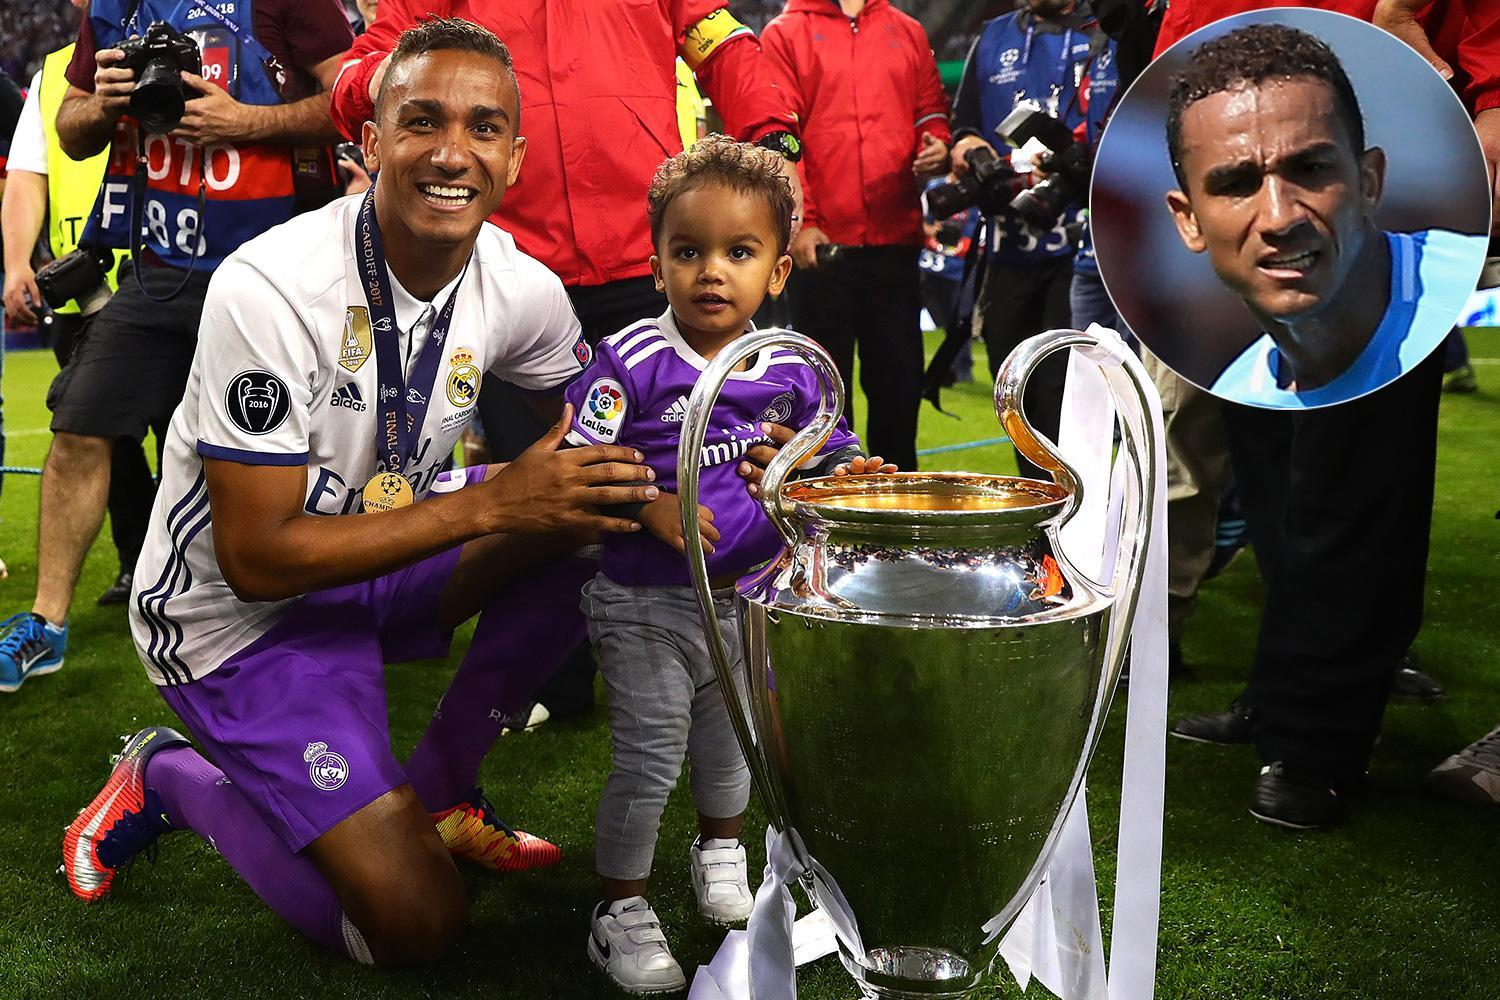 Danilo aiming to win third straight Champions League with Manchester City after Real Madrid double